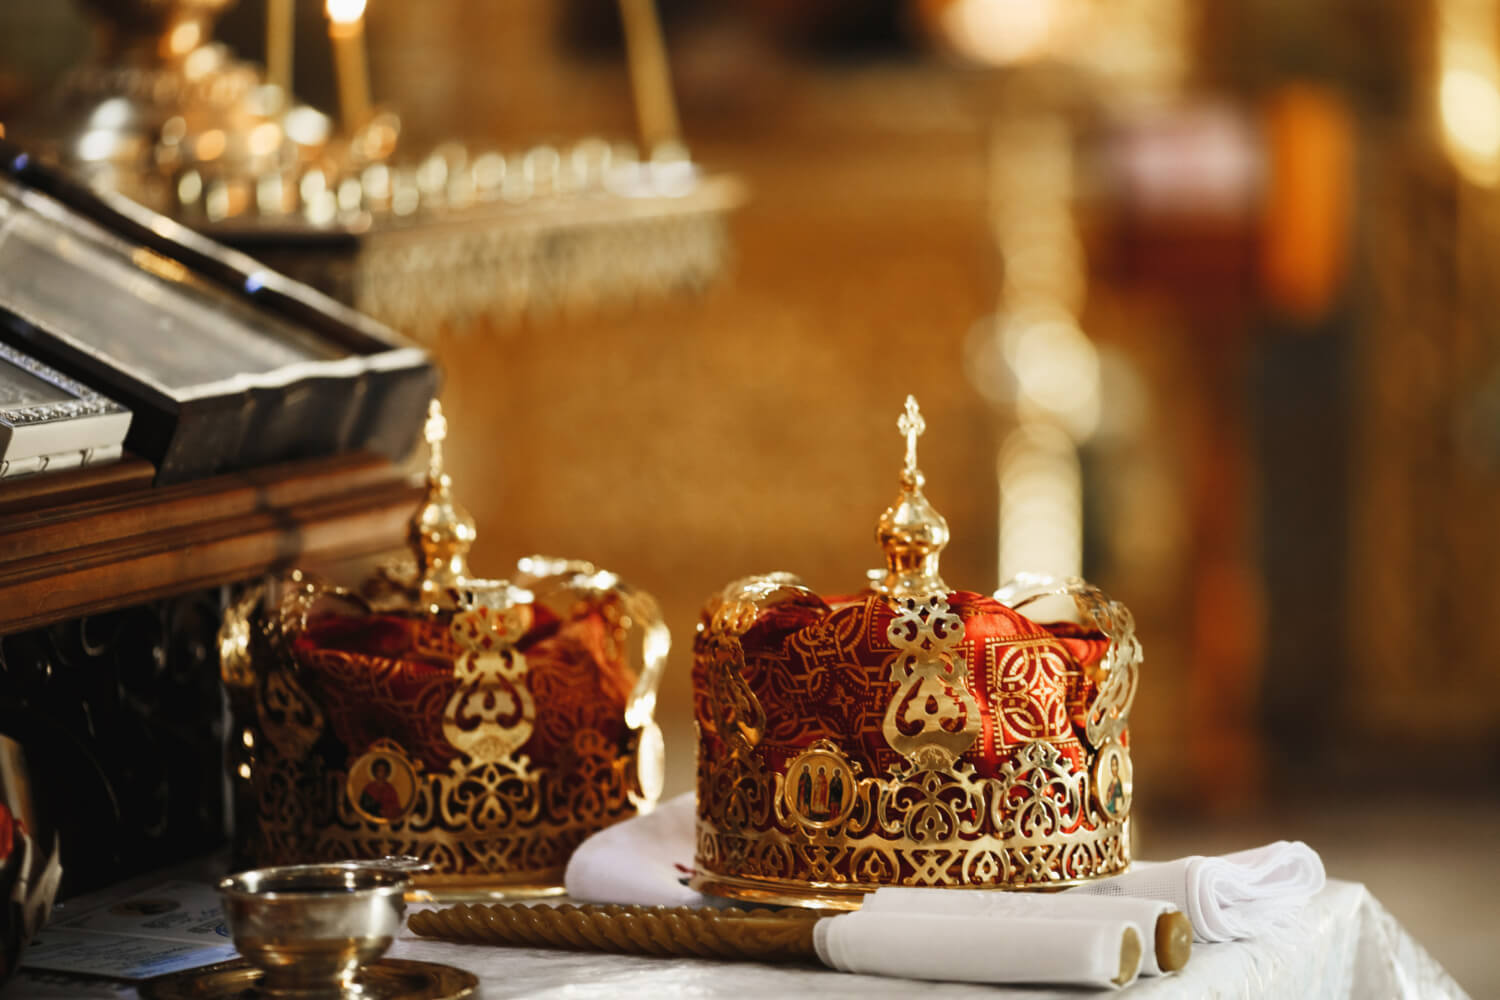 sacral-ritual-crowns-wedlock-cathedral-church-ritual-candles